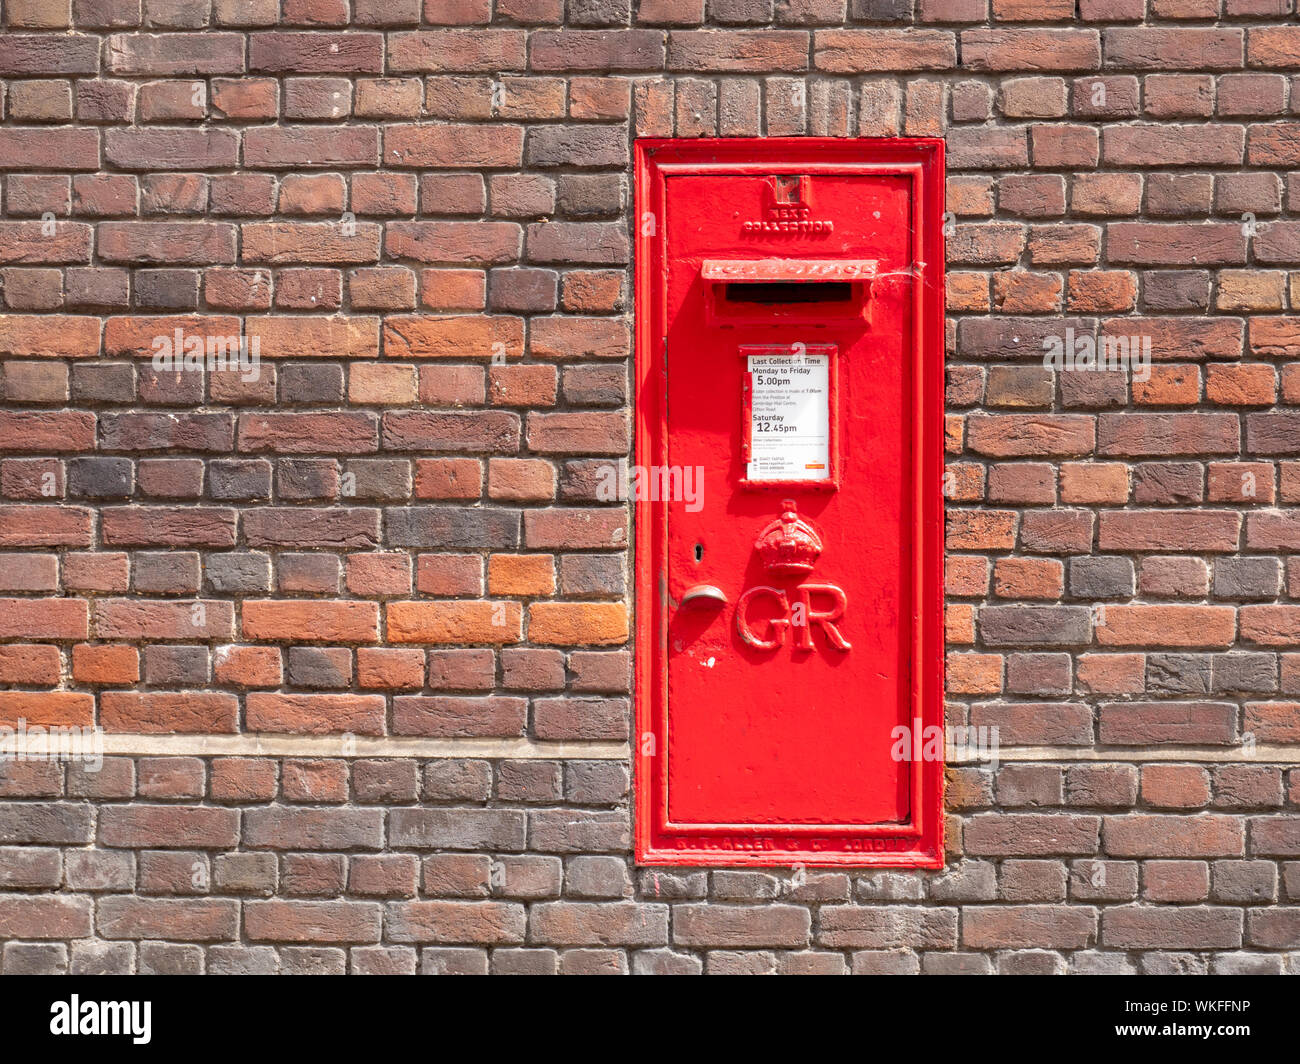 An old GR red post box or mail box set into a brick wall in Cambridge UK Stock Photo